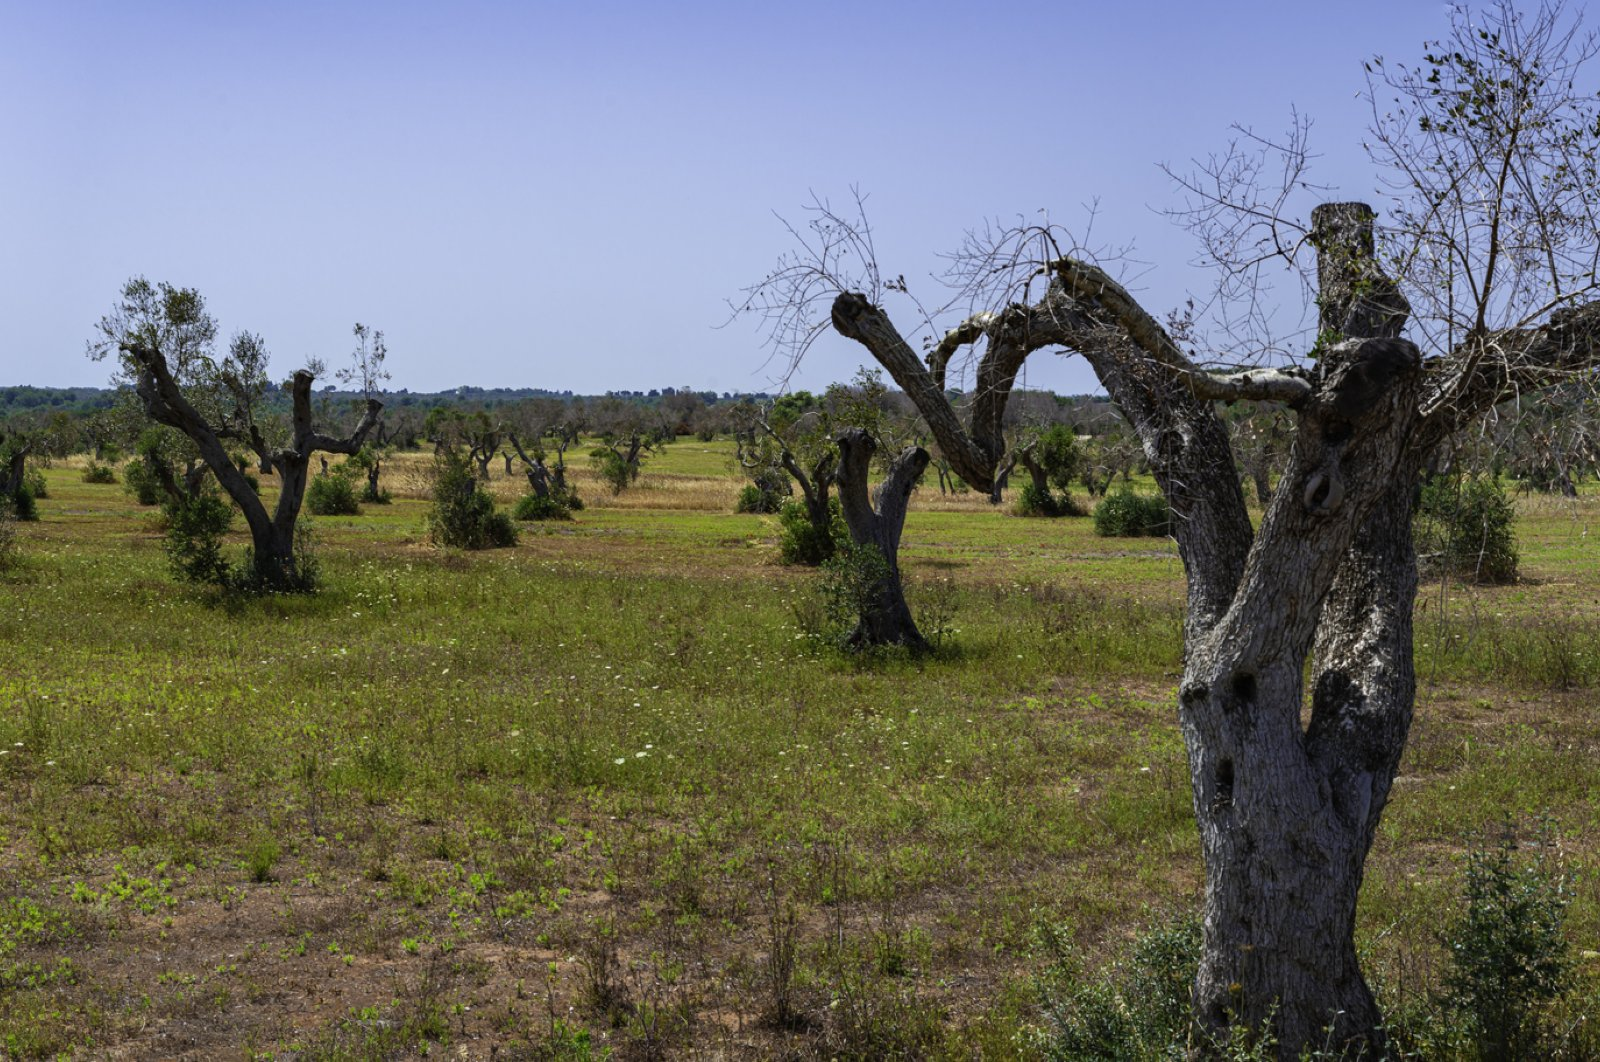 Xylella-infested olive trees in Salento, South Italy. (iStock Photo)